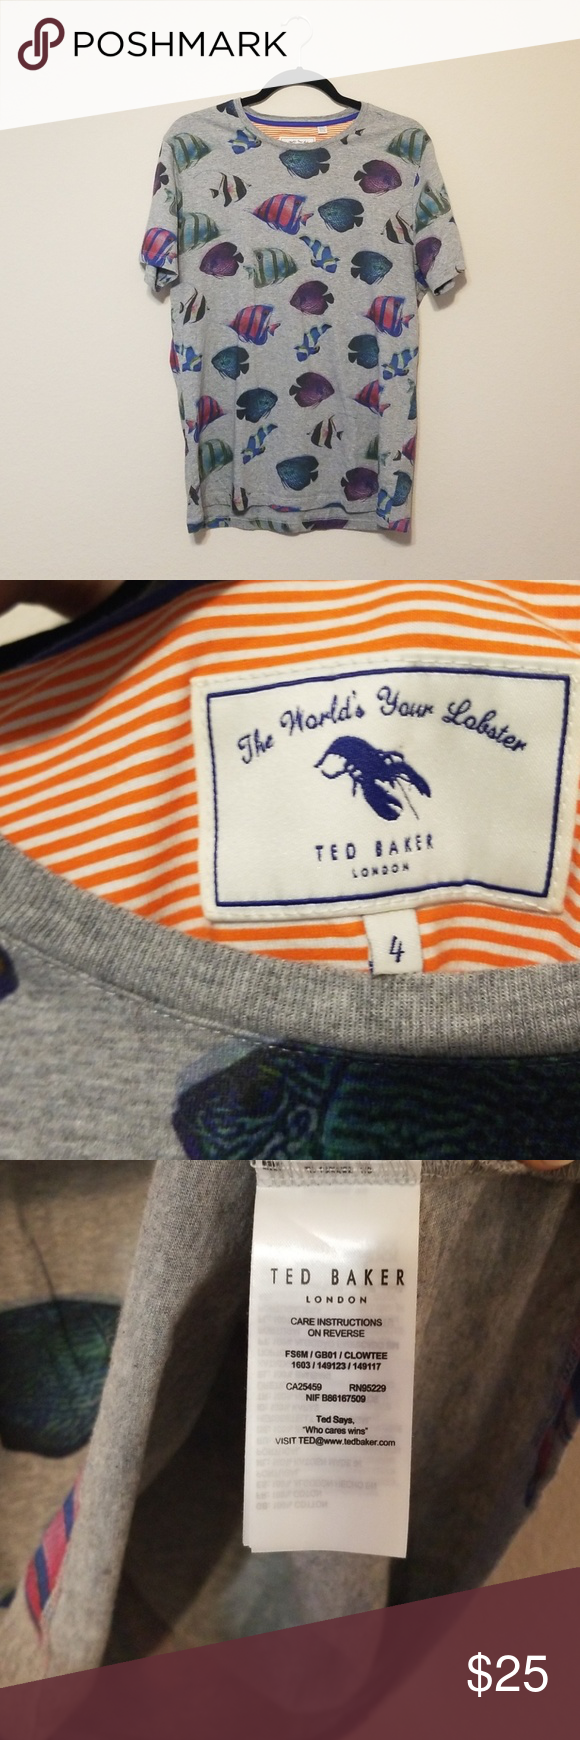 8ce6e64db339 Ted Baker Fish T-Shirt Size 4 Gray Ted Baker shirt with fish print.